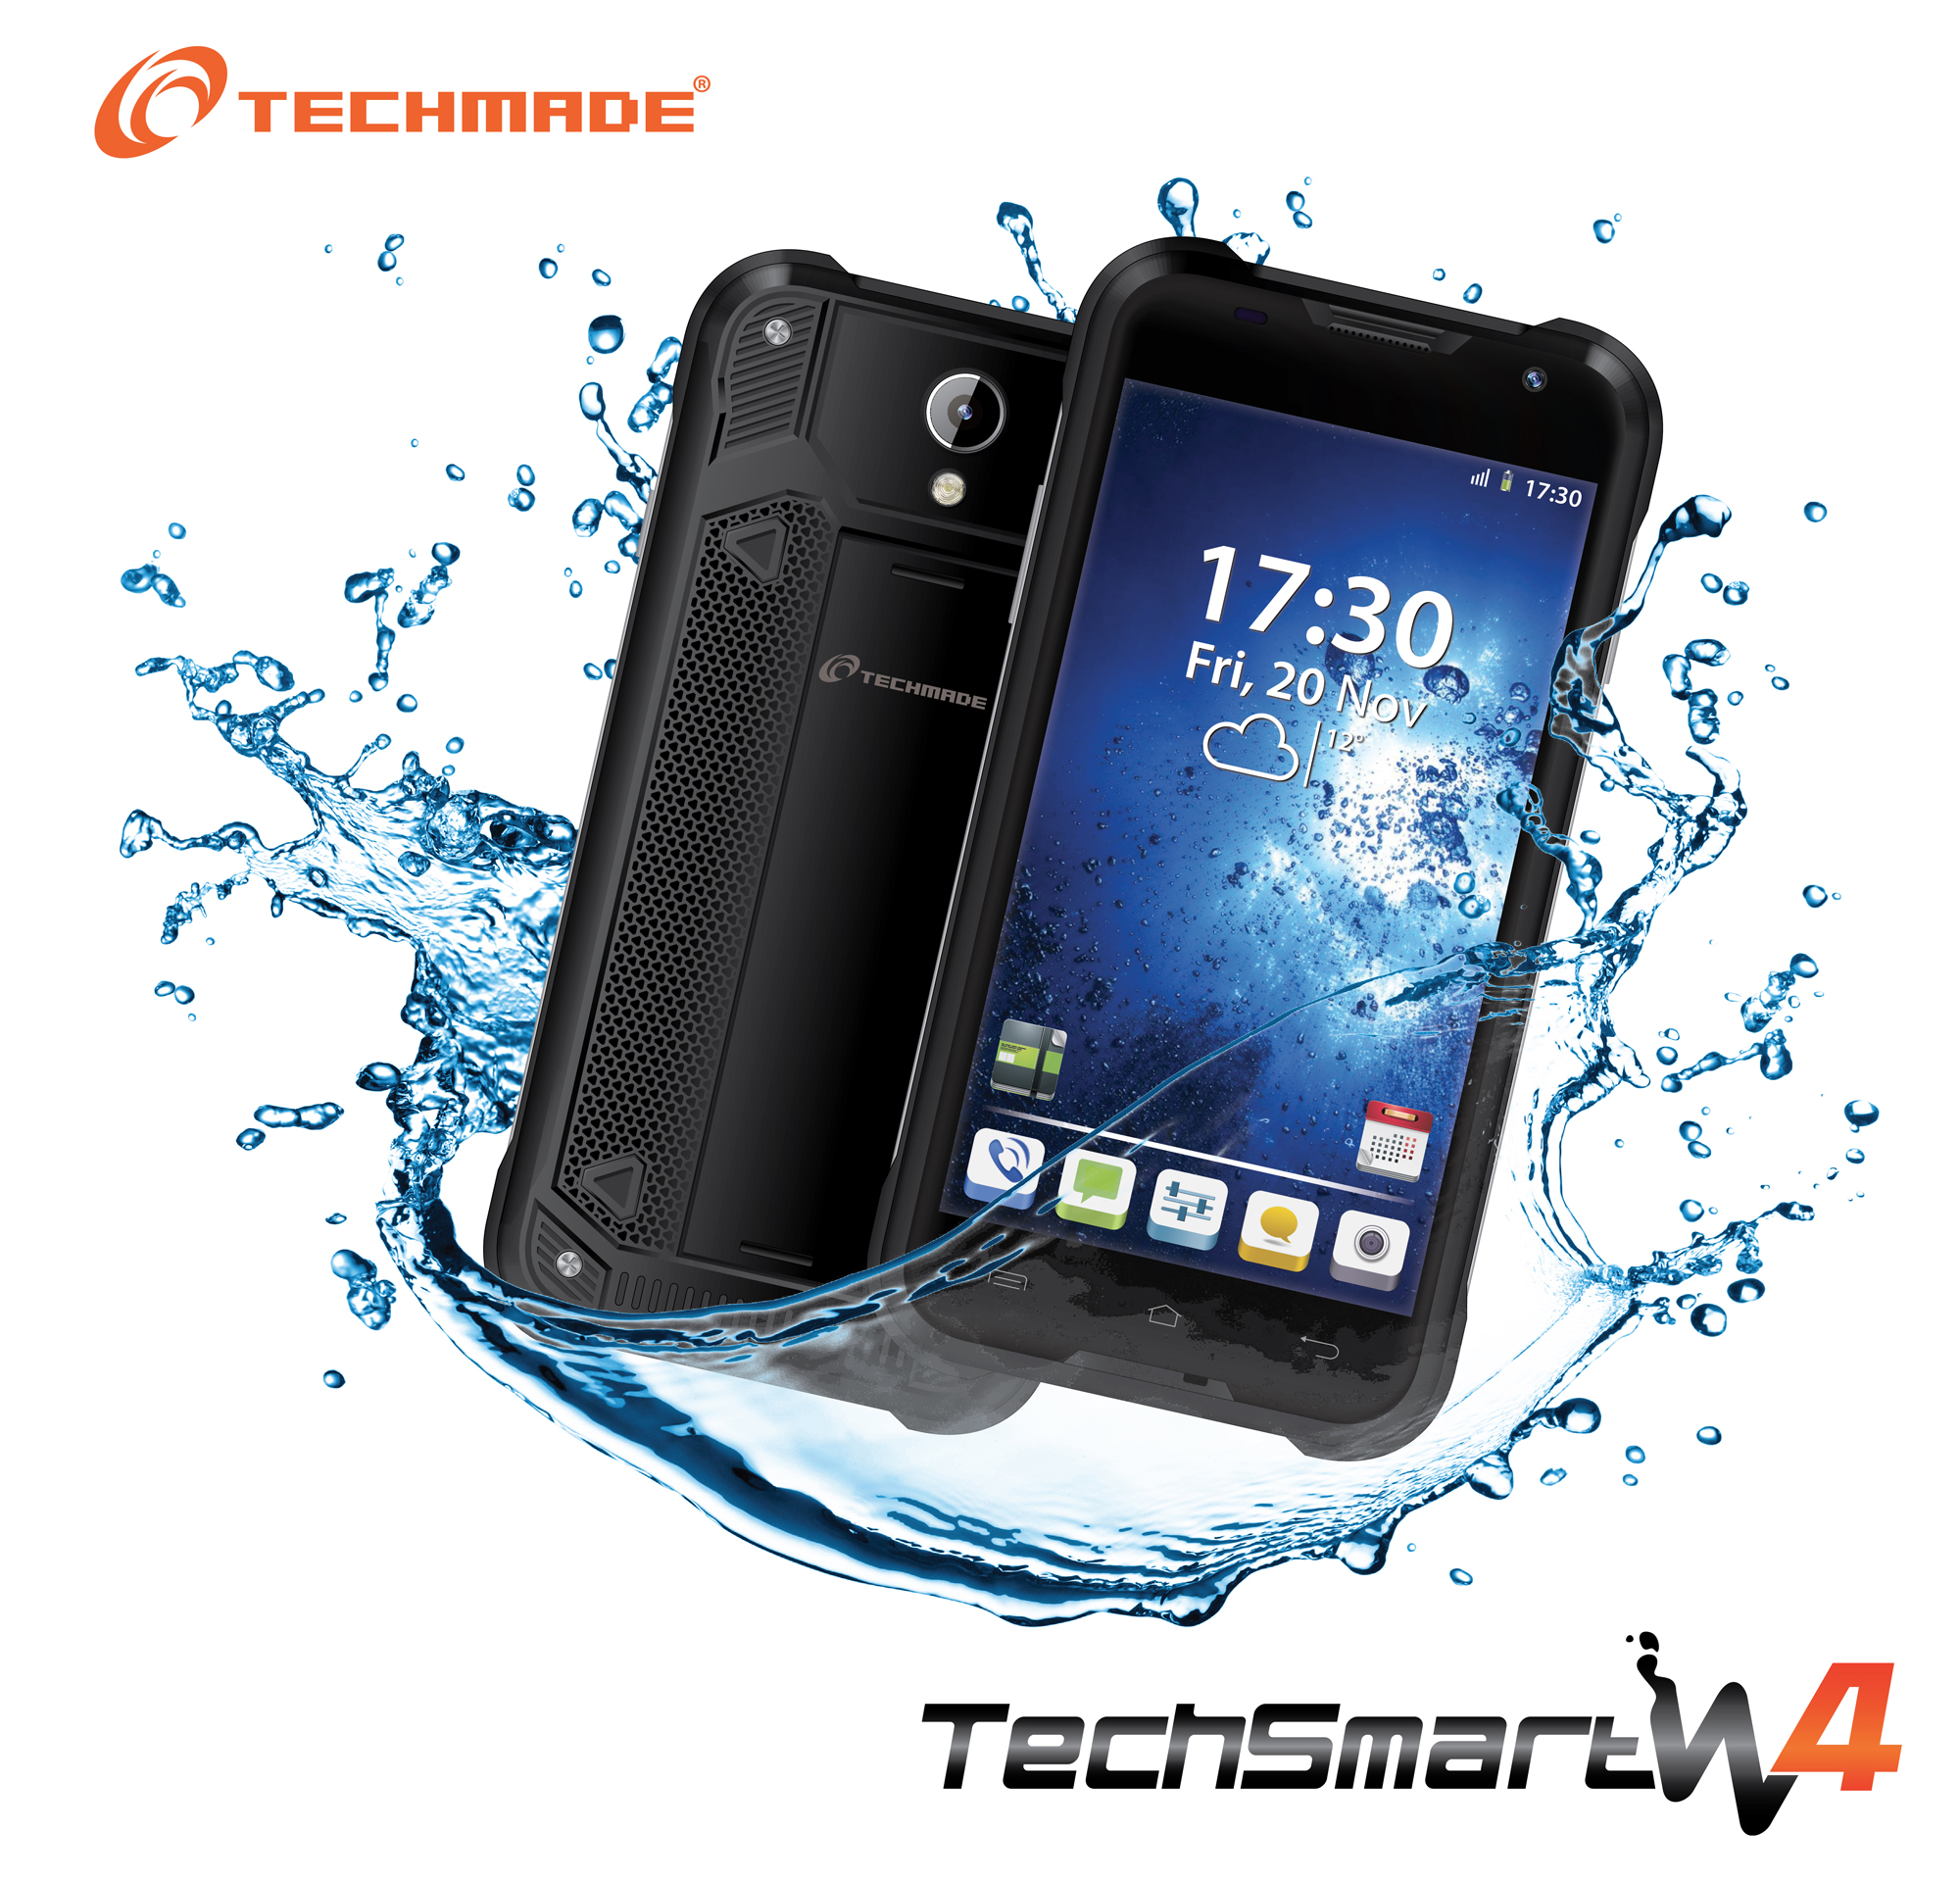 Techmade Techsmart W4